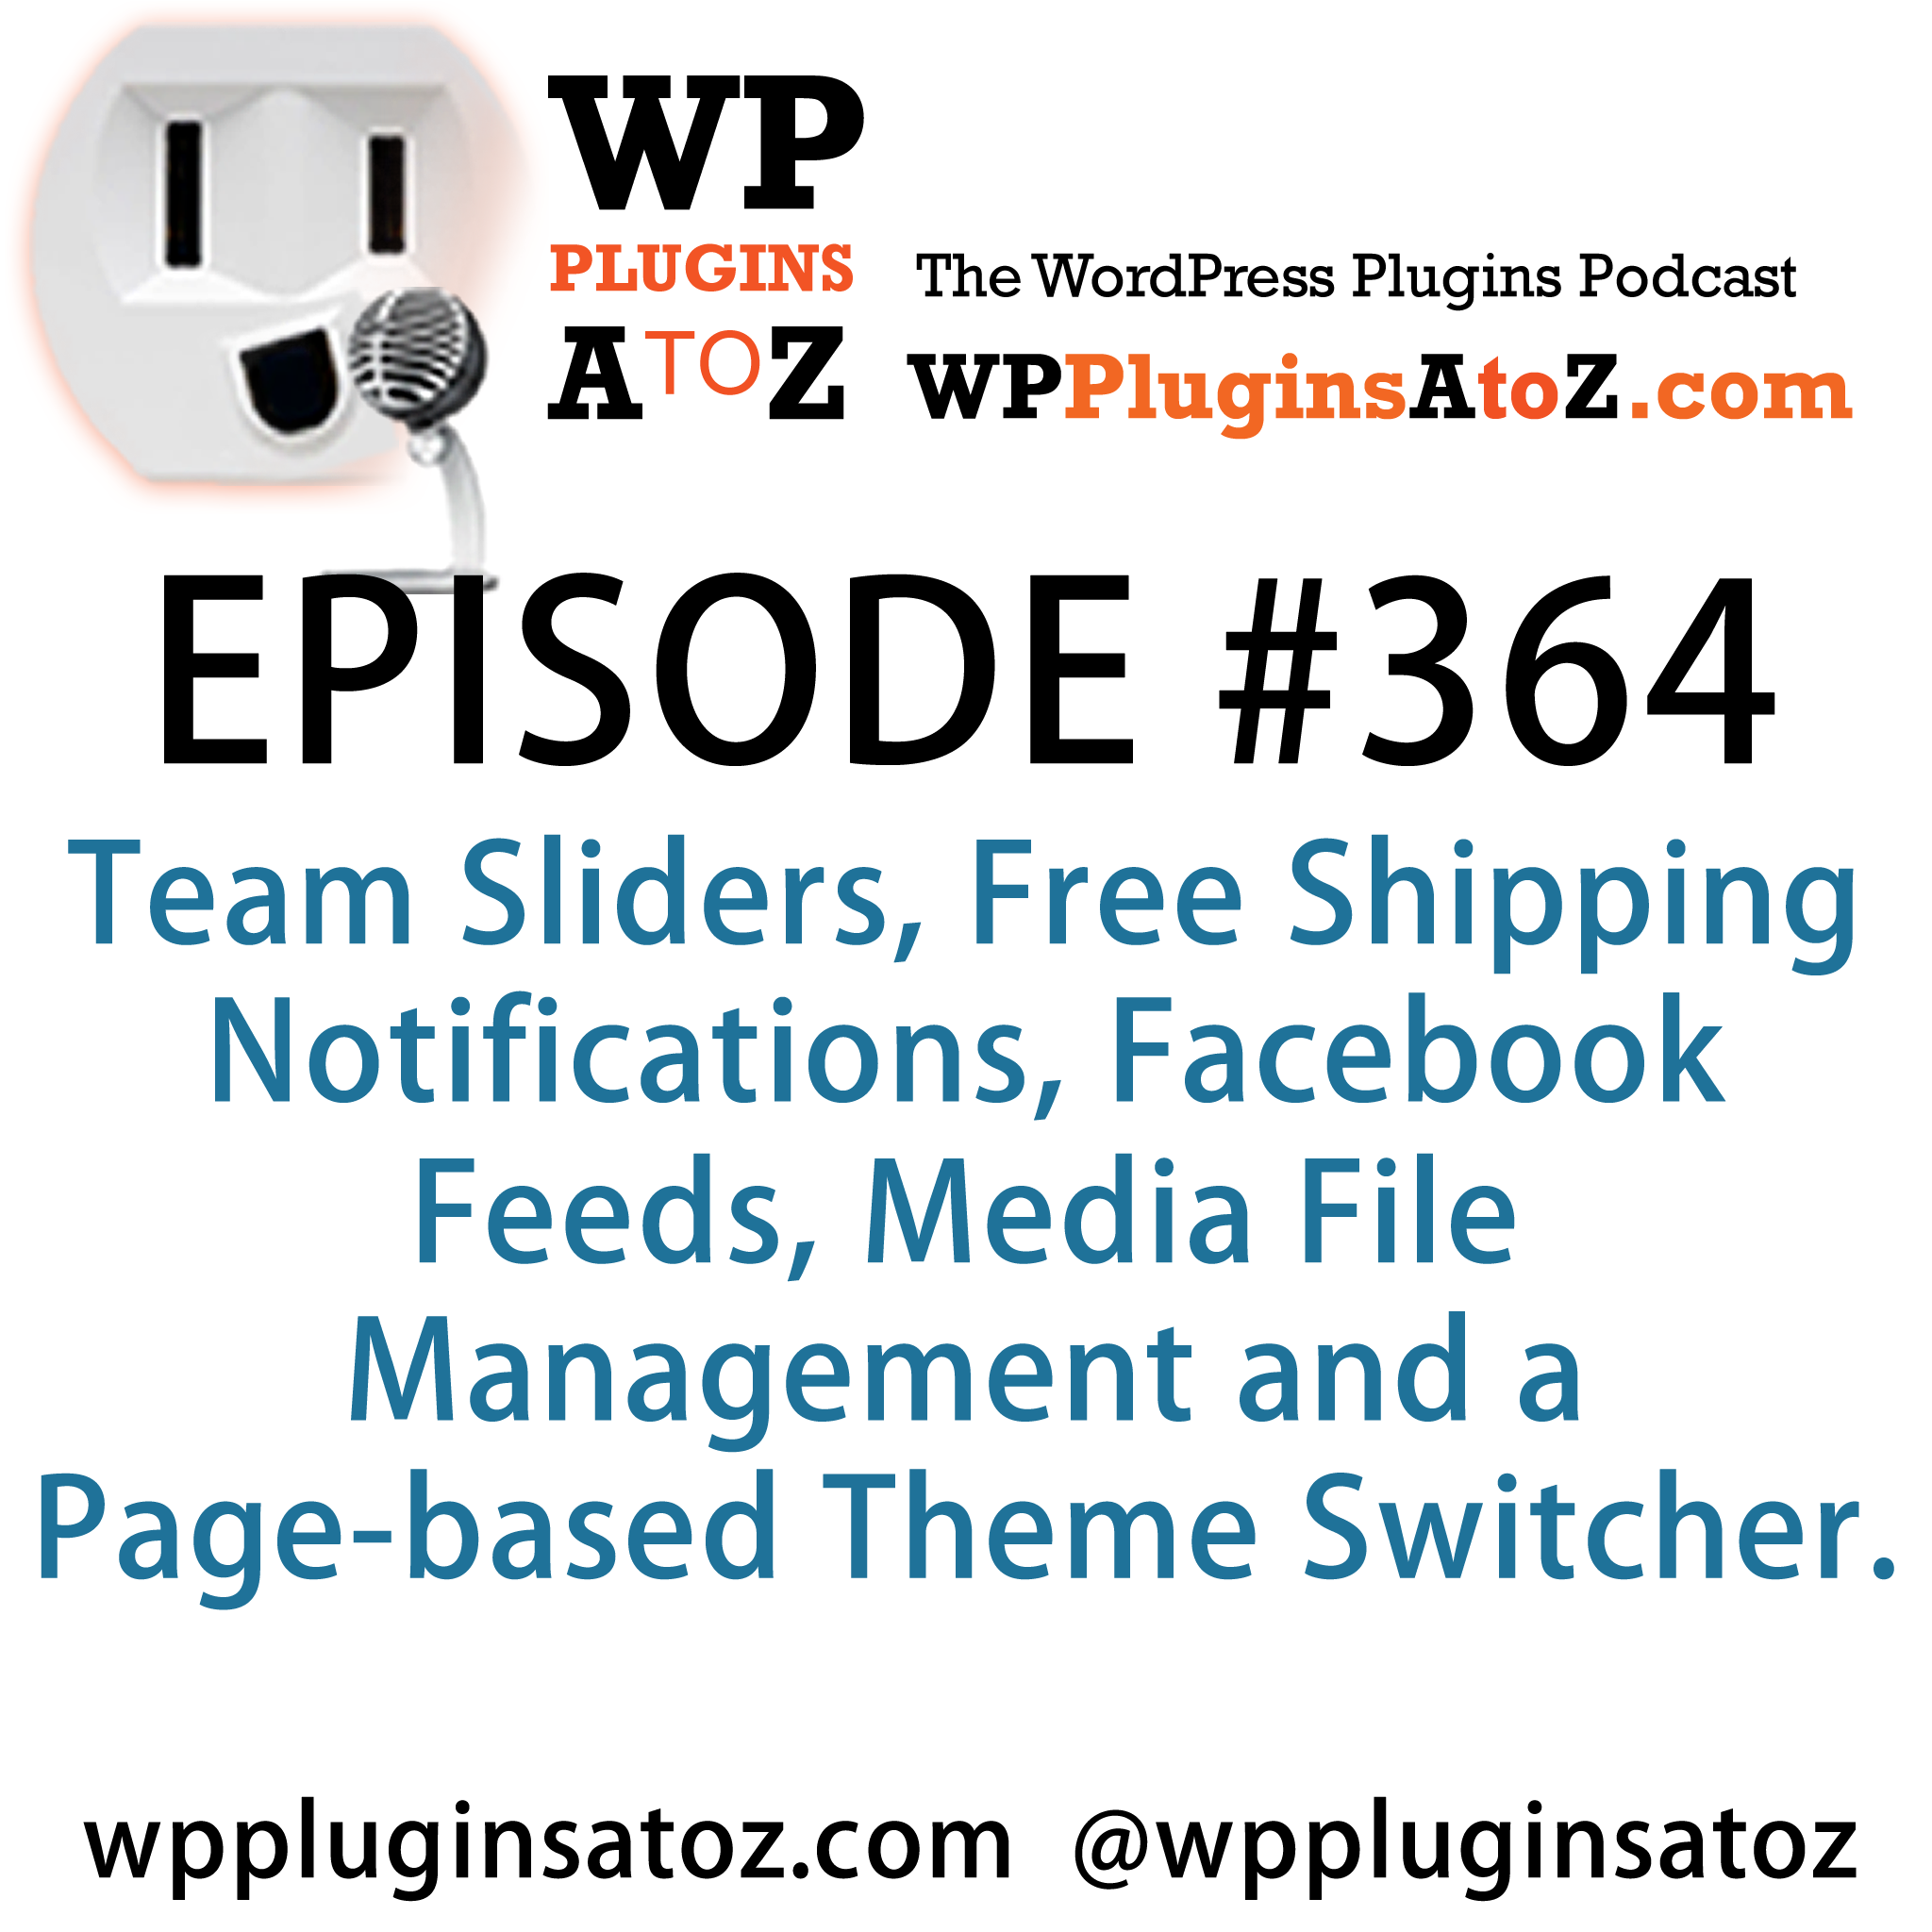 WordPress Plugins A to Z Episode 364 Facebook Feeds, Media